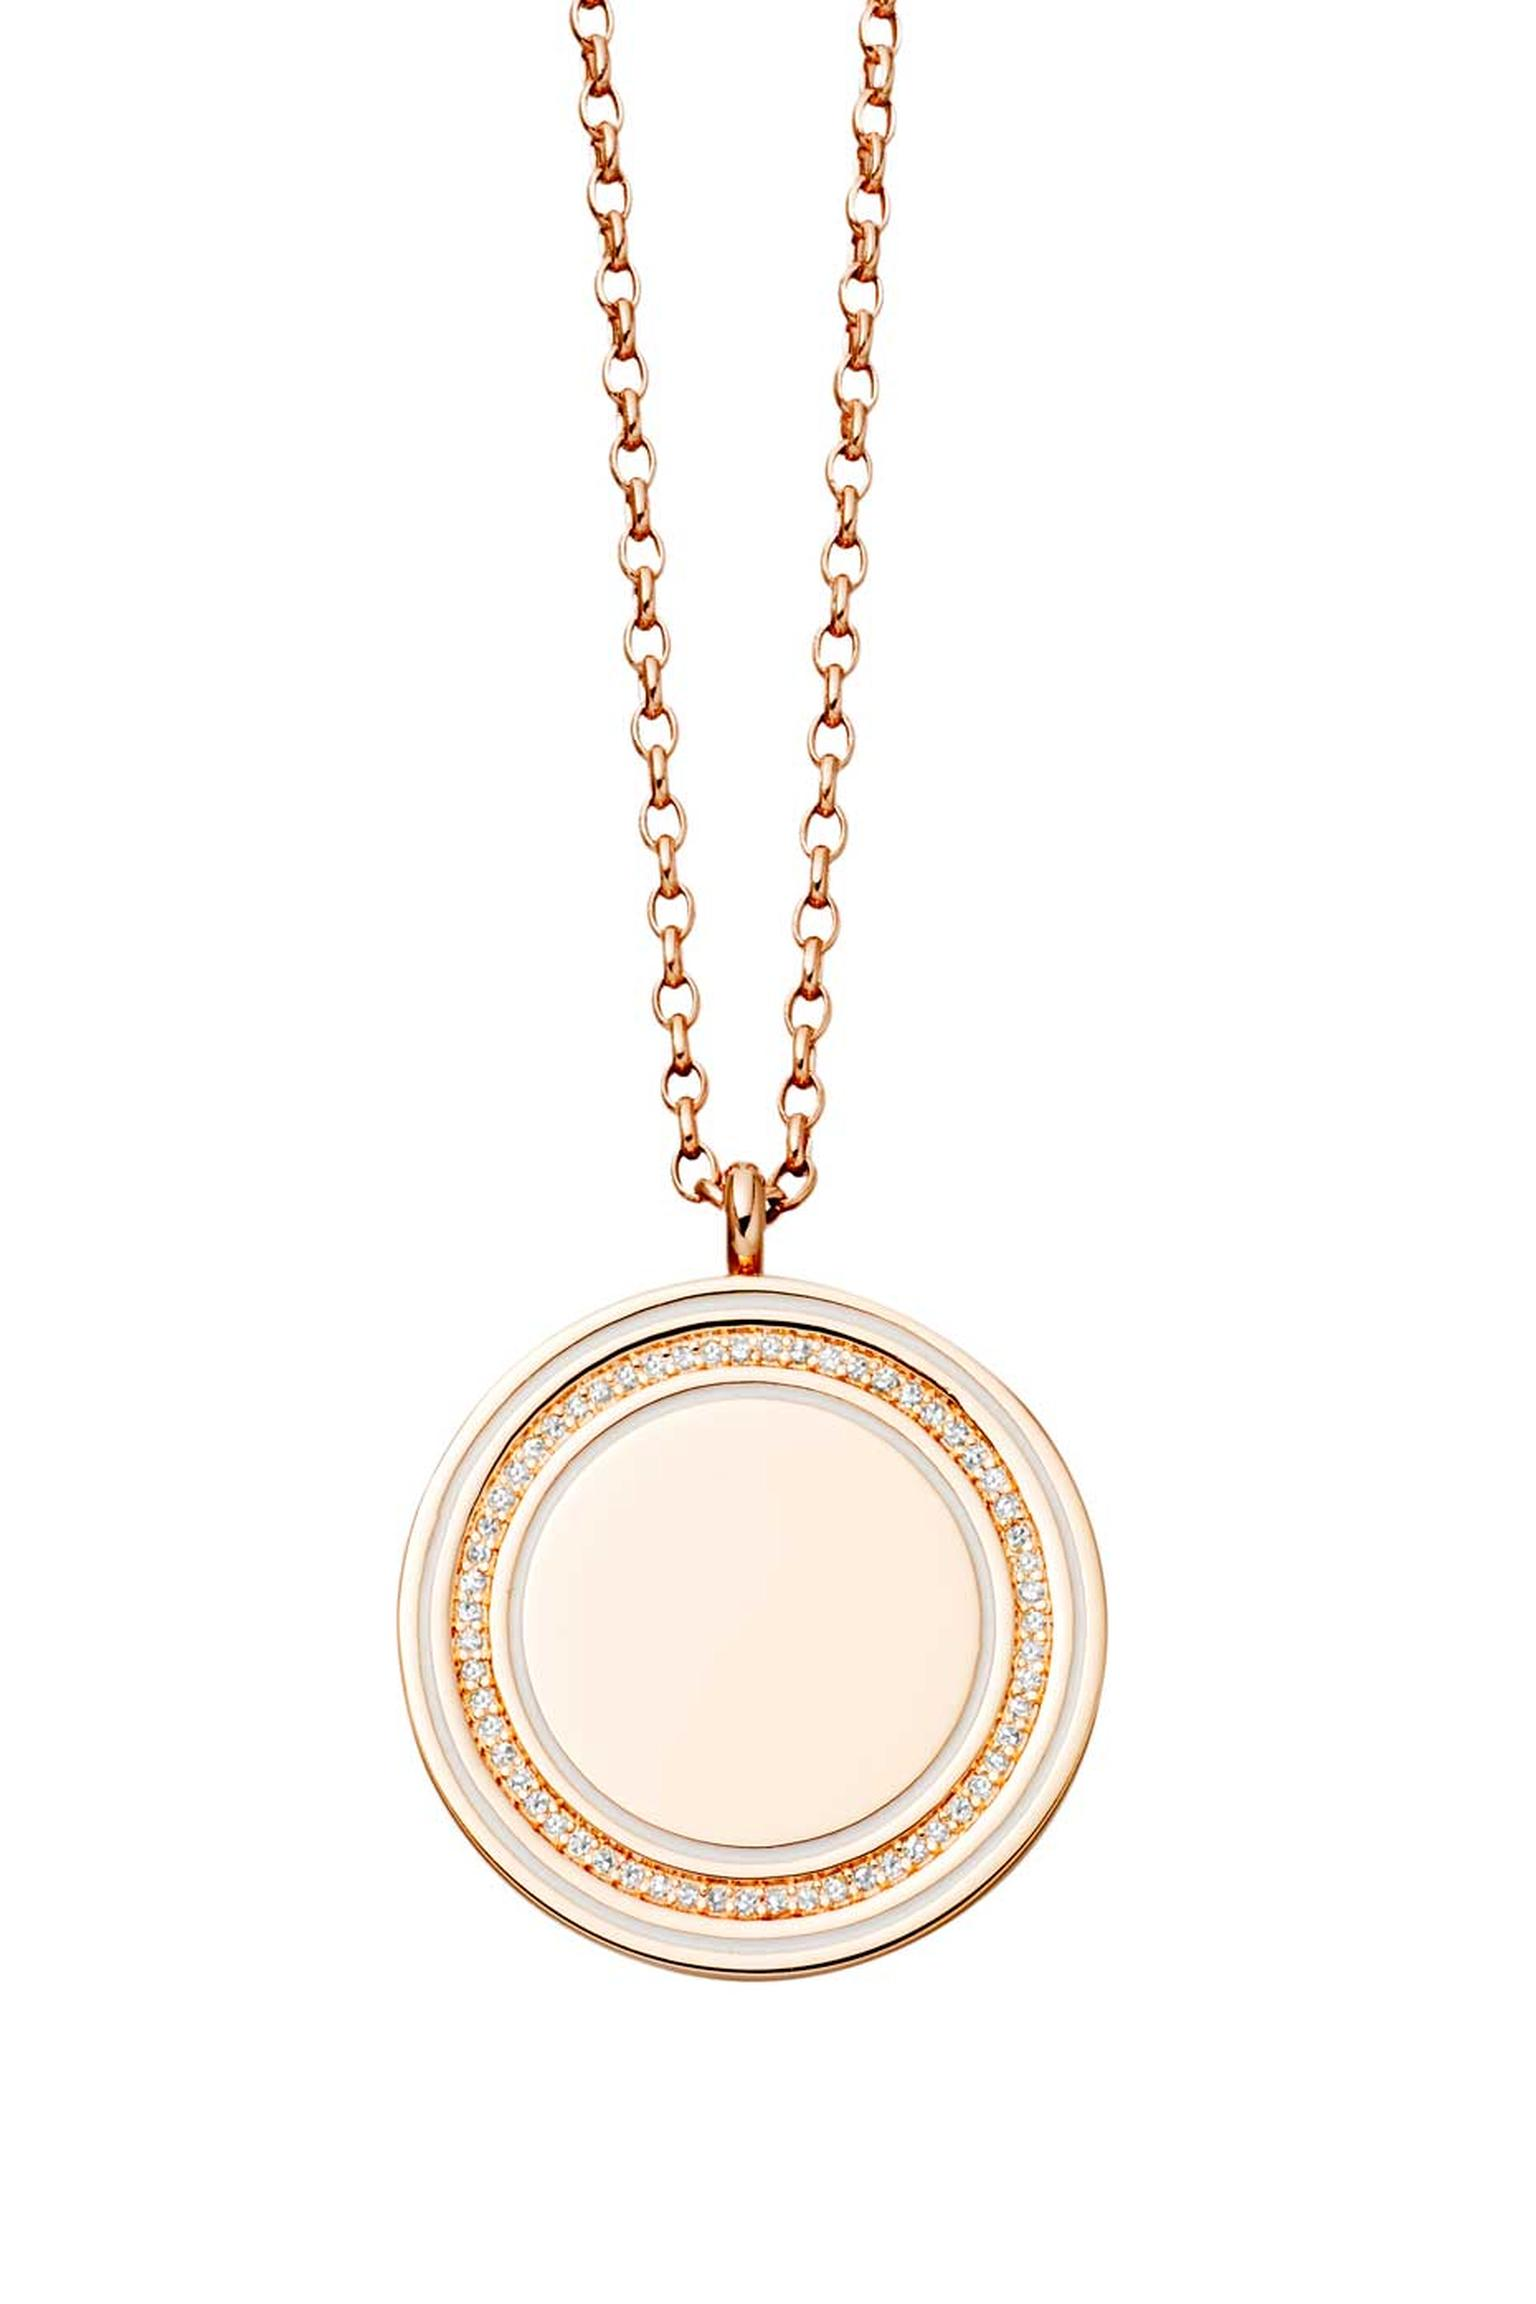 Astley Clarke Giant Moonlight Cosmos locket in rose gold and diamonds (£1,950).